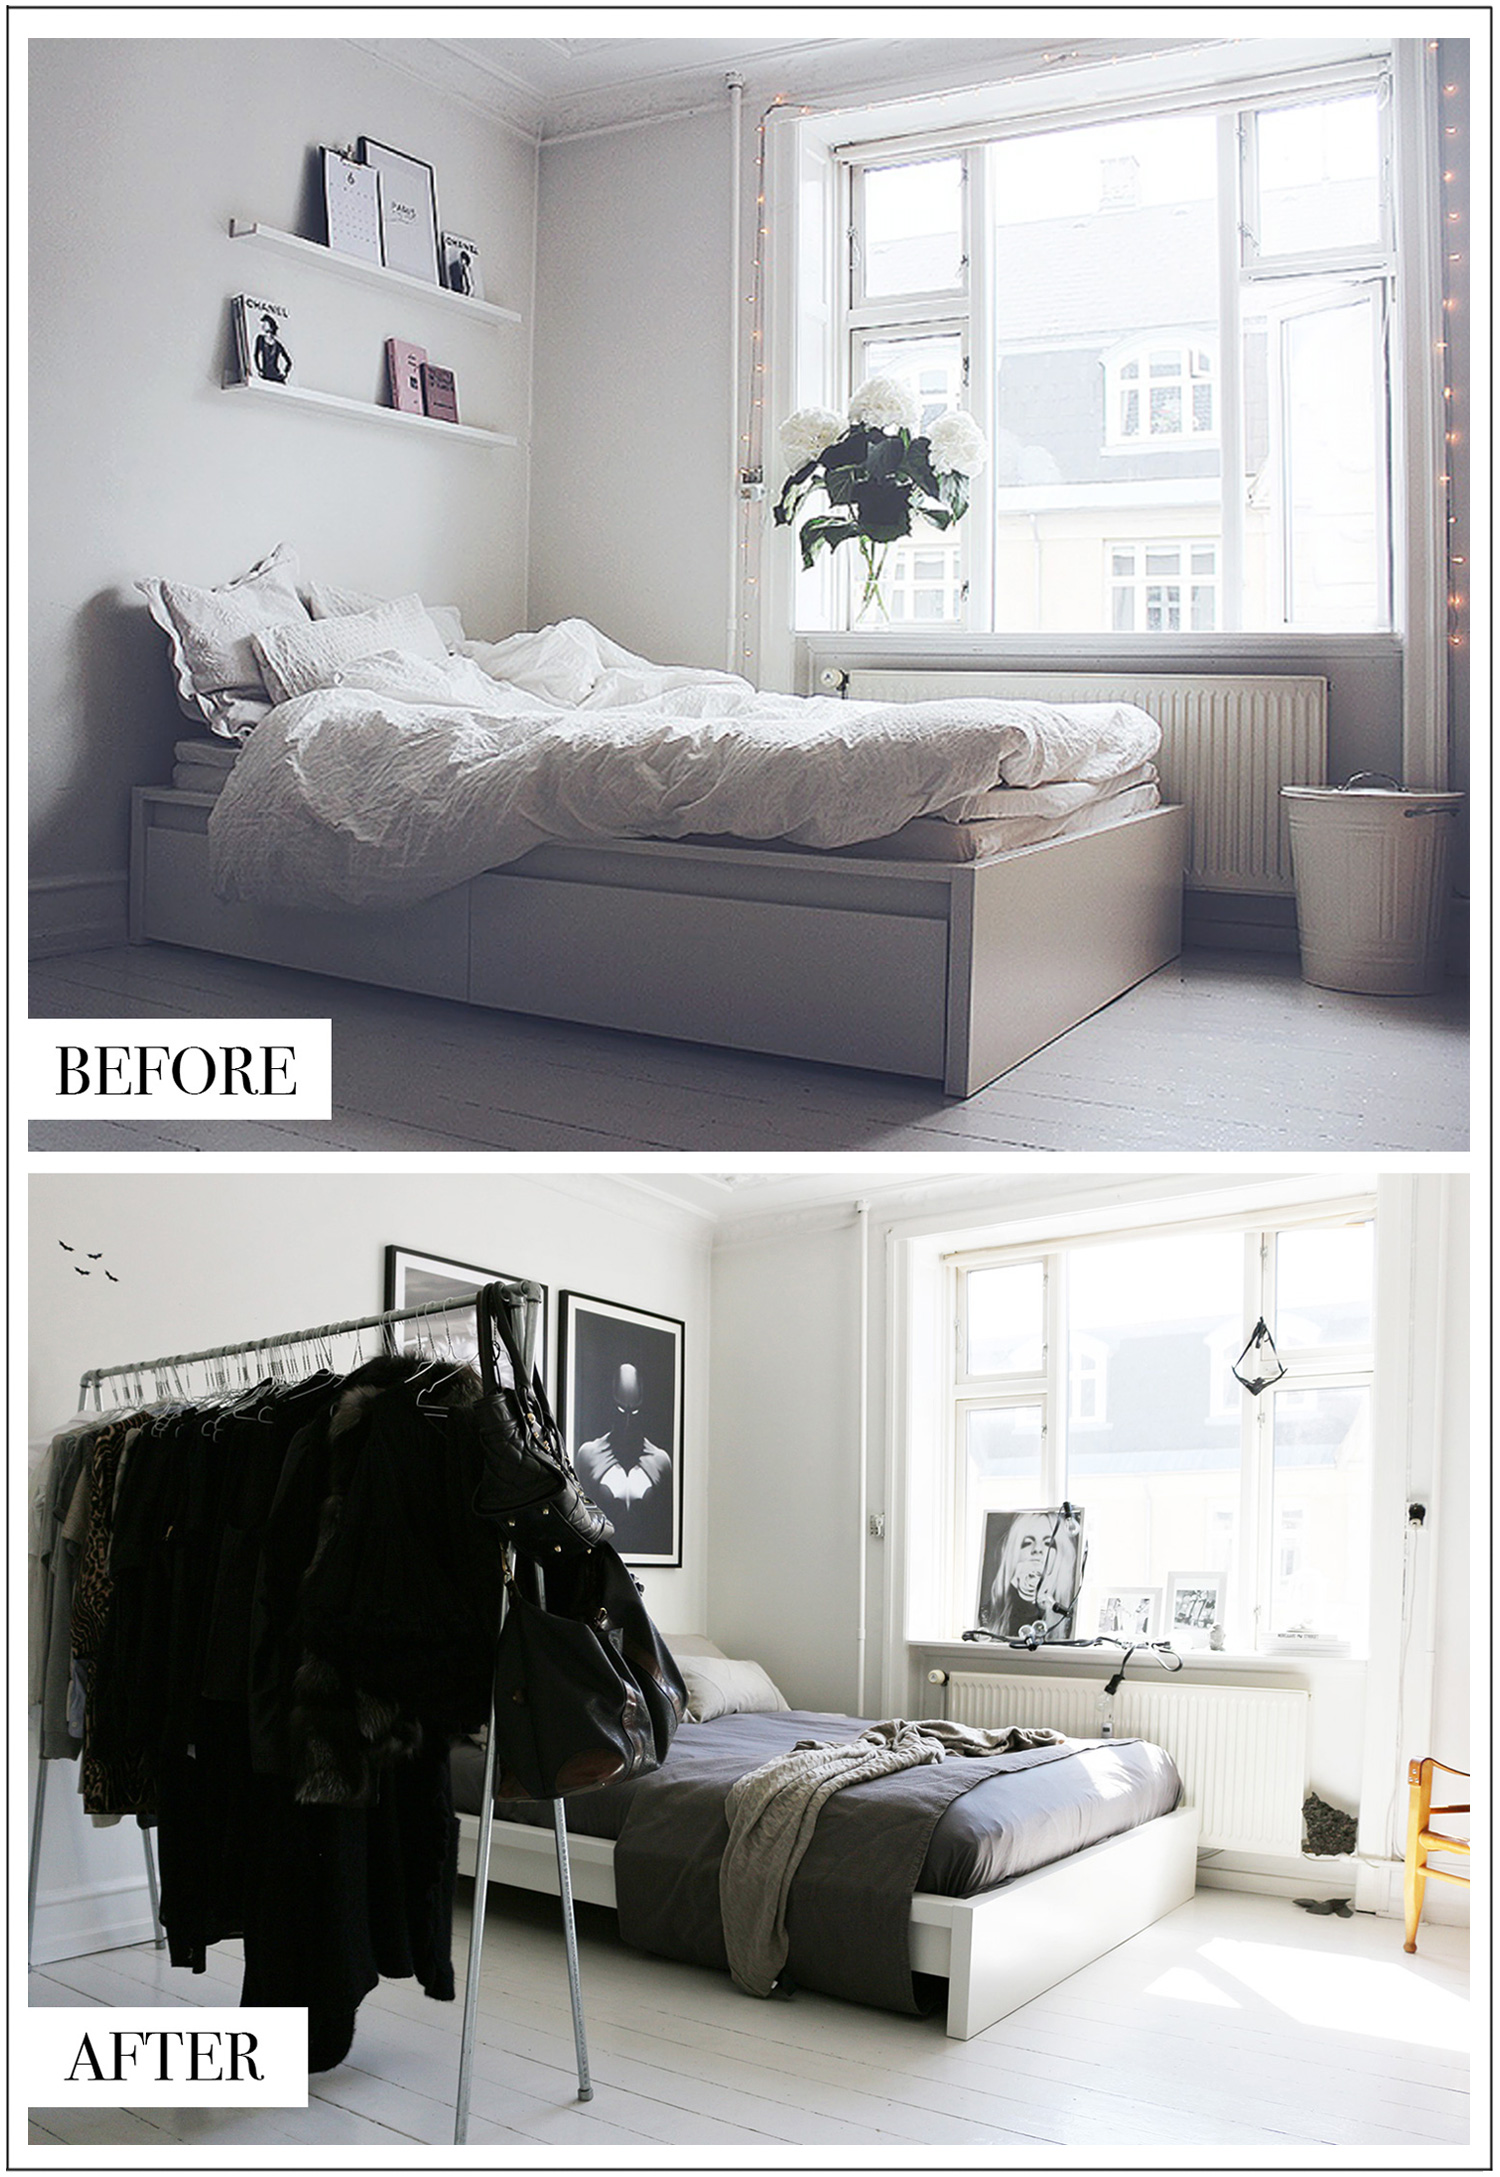 before-after-bedroom@2x